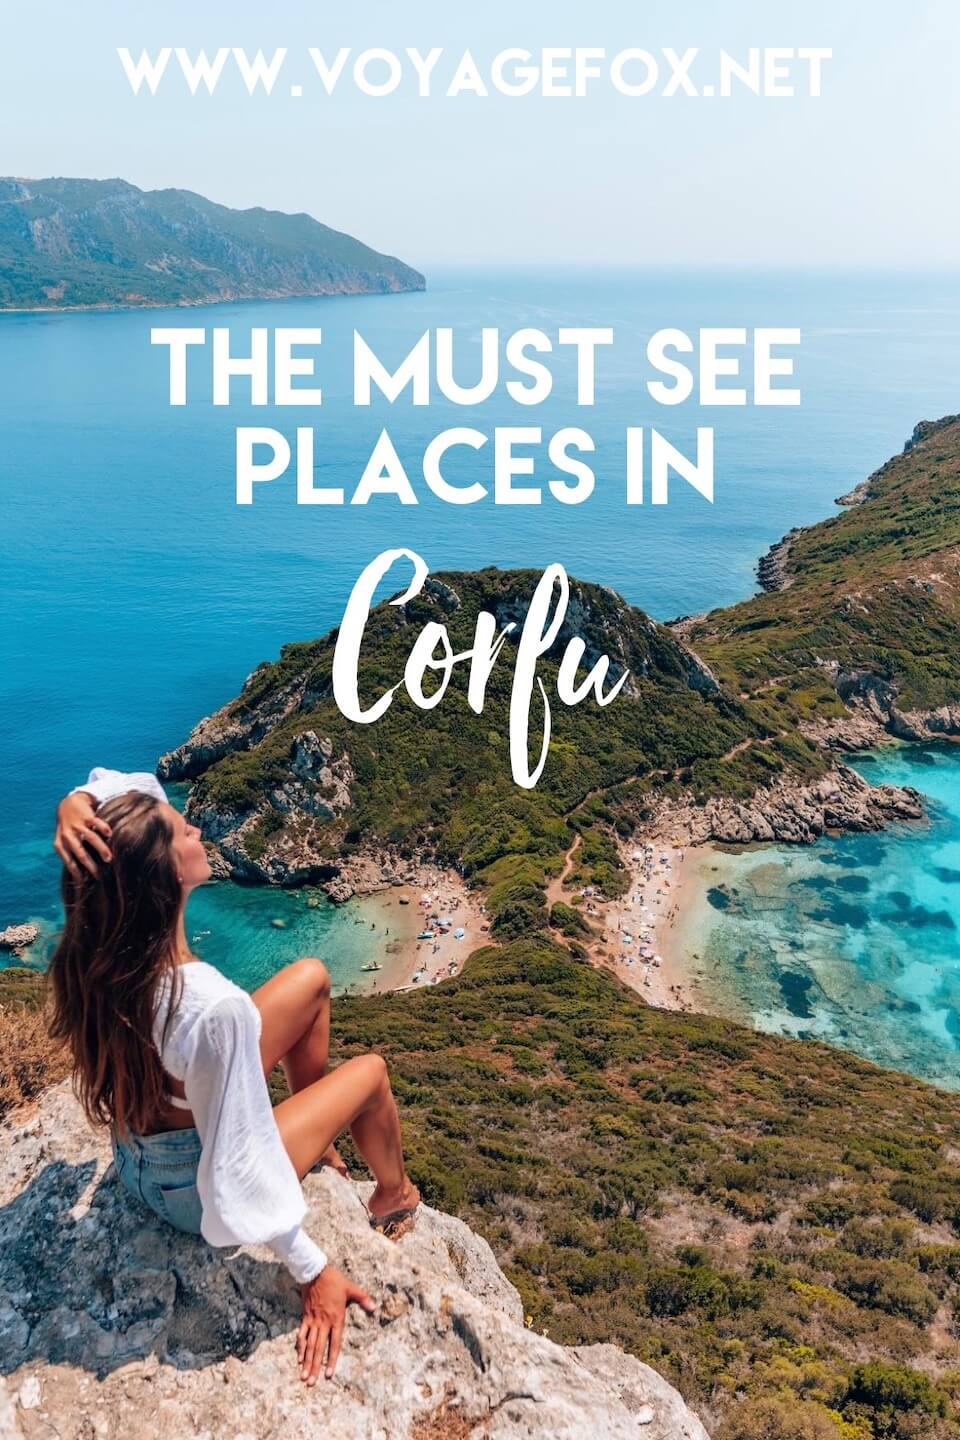 must see places in corfu, Greece